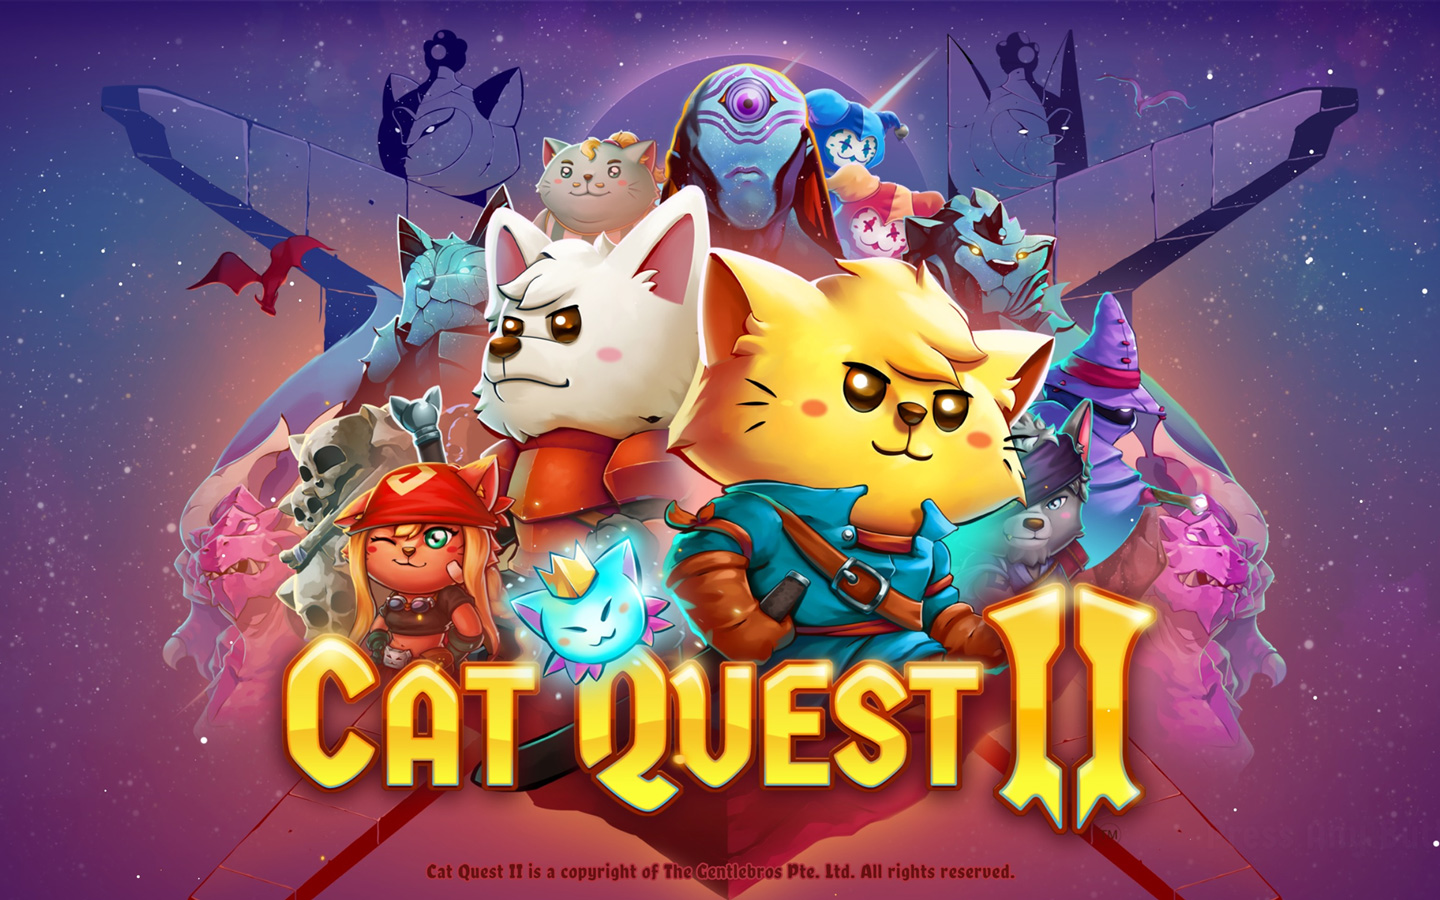 Cat Quest II Wallpaper in 1440x900